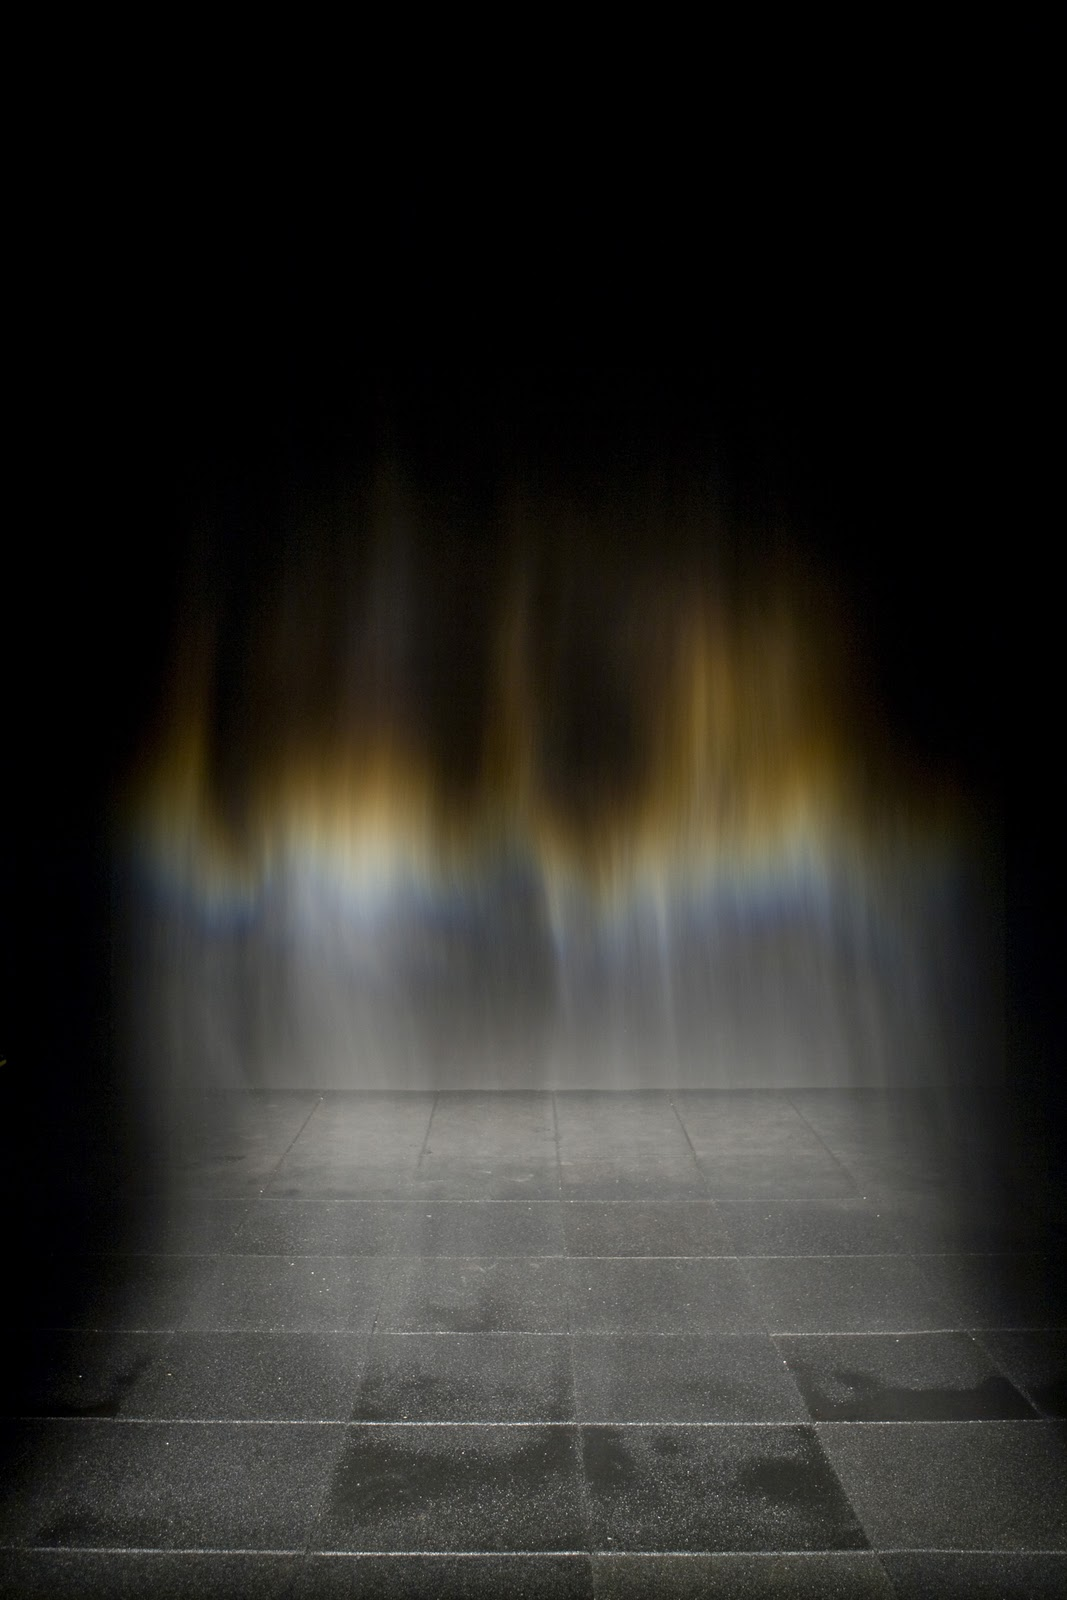 Olafur Eliasson, Beauty, 1993, artificial rainbow